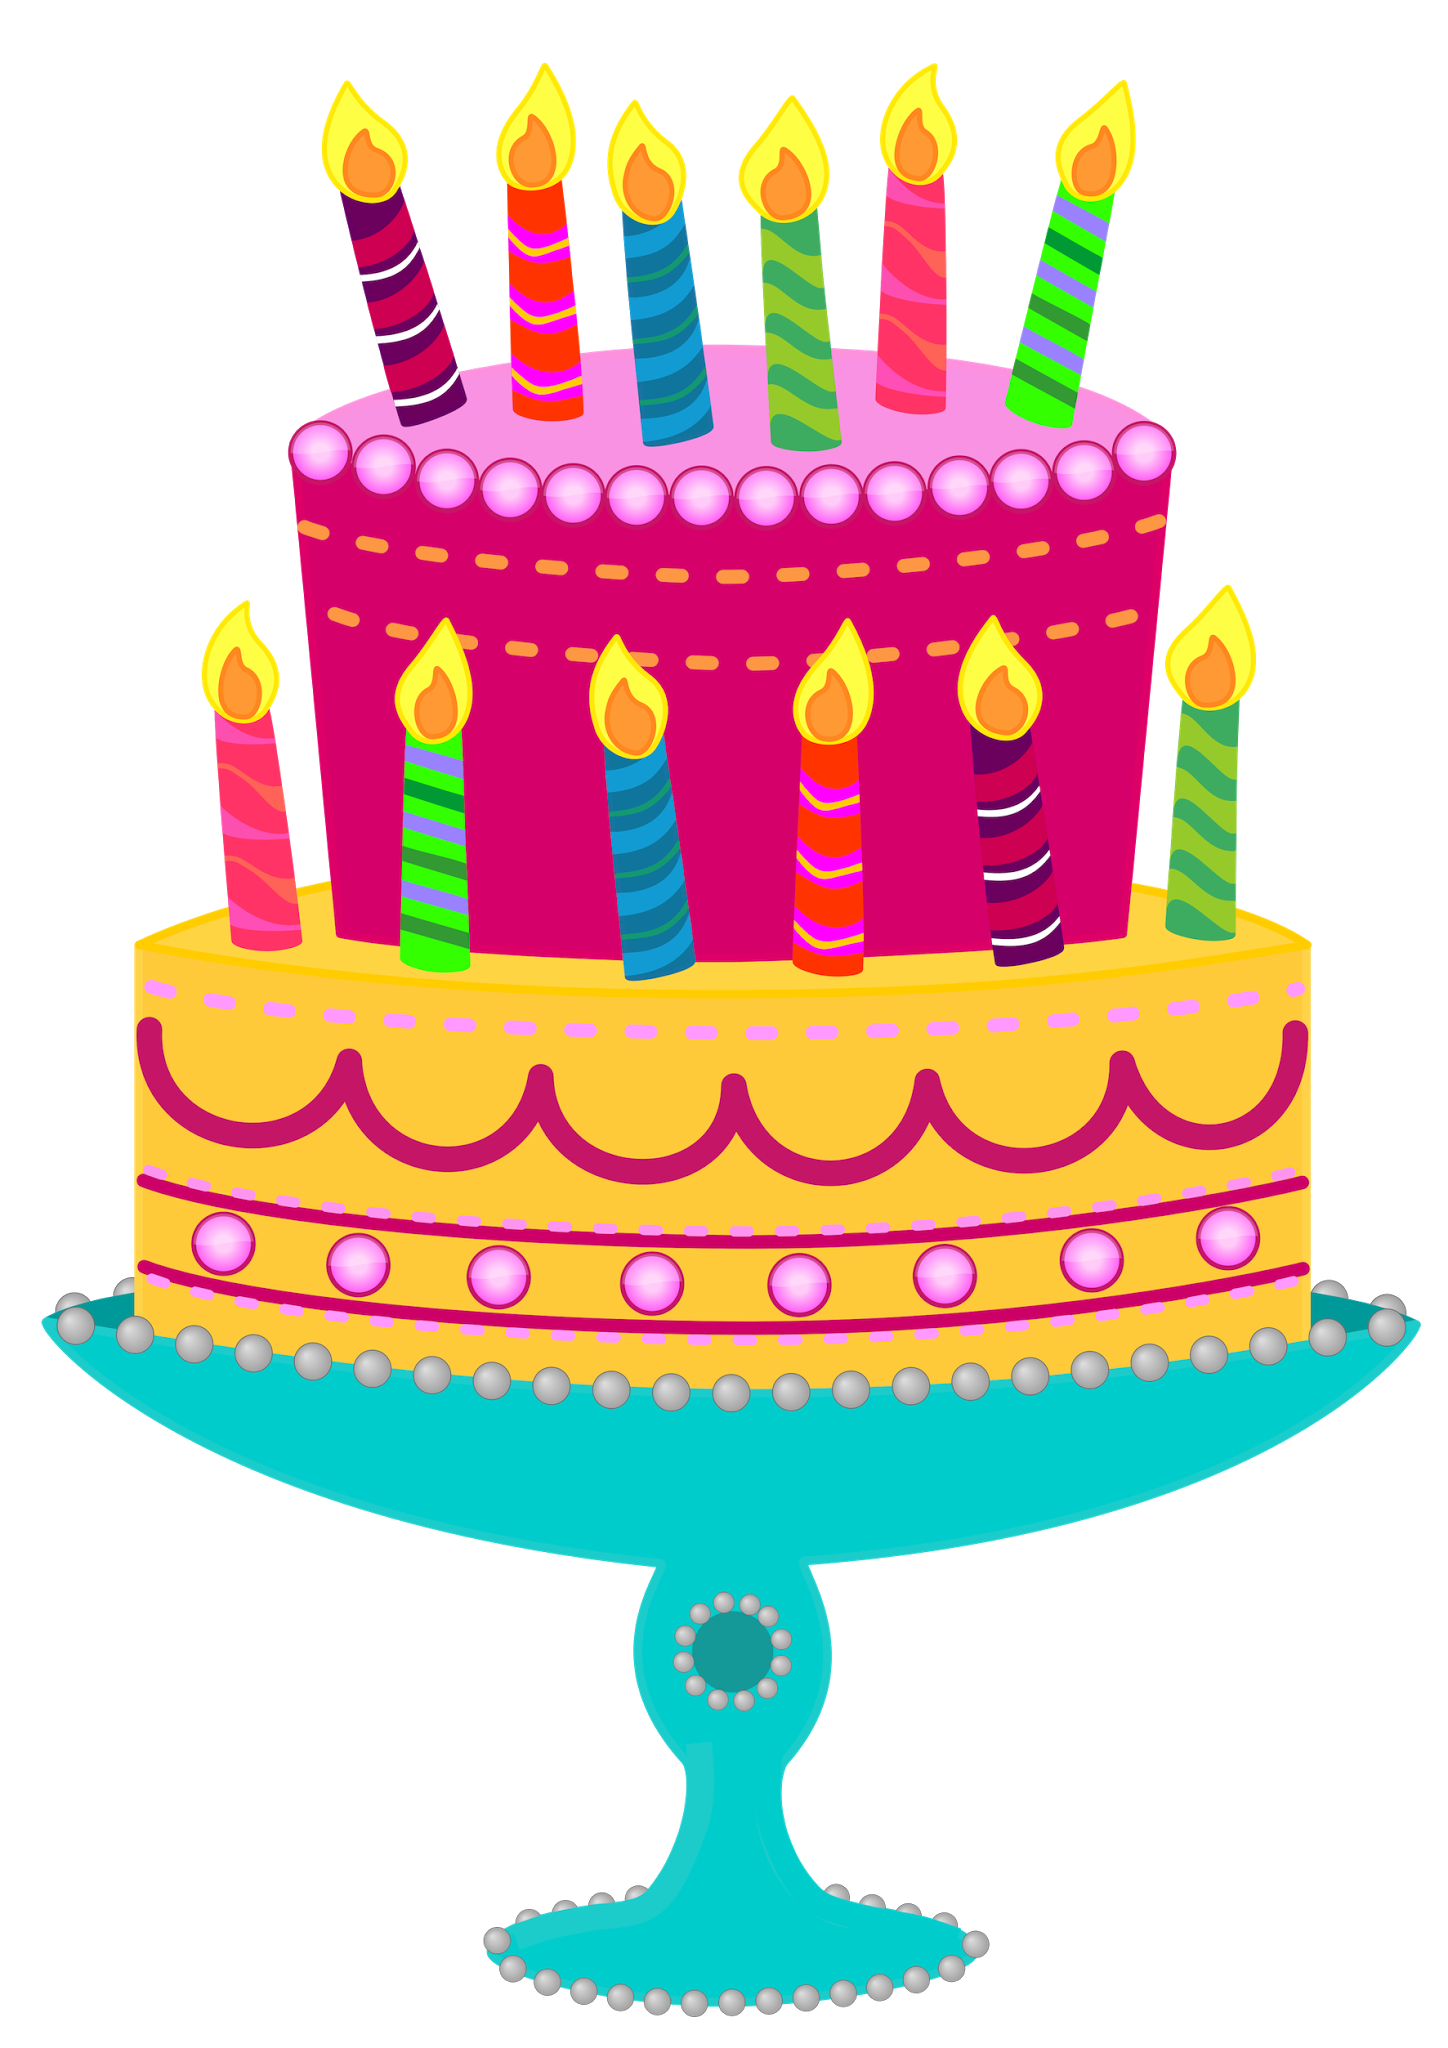 Cake Designs Clip Art : Birthday Cake Cliparts - ClipArt Best